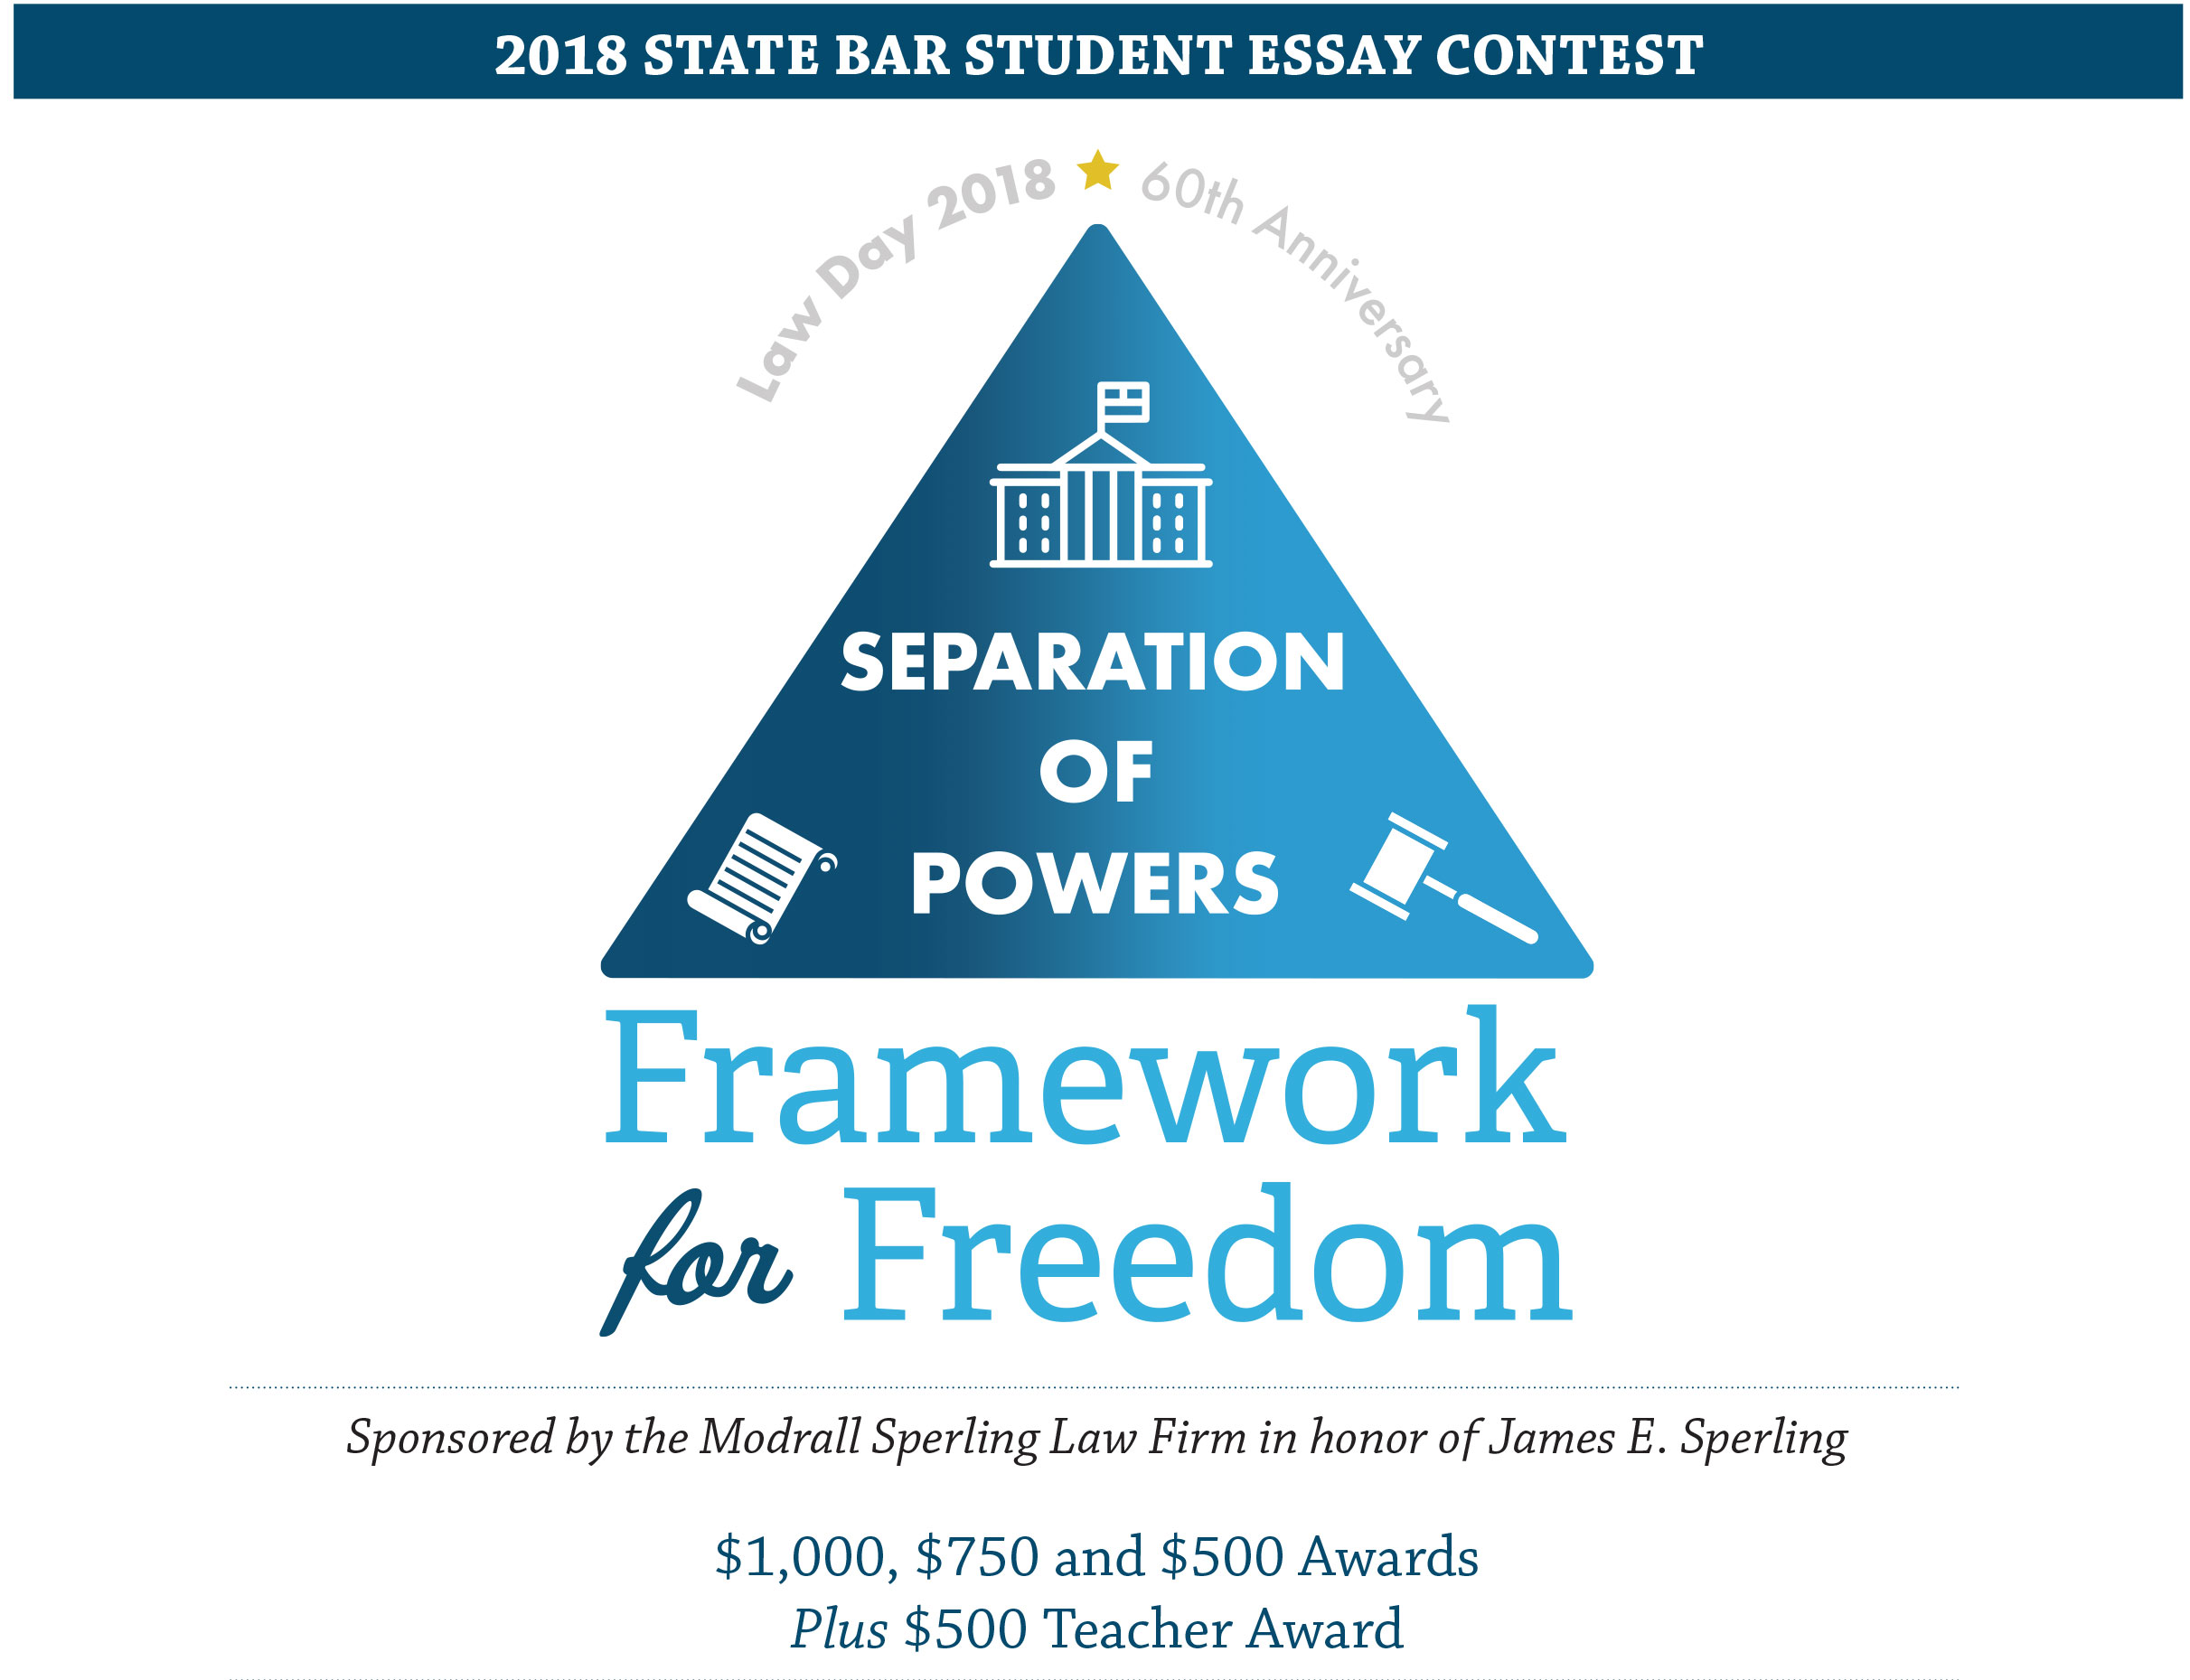 010 Separationofpowers Essay Example Contests For High School Students Staggering 2017 Full